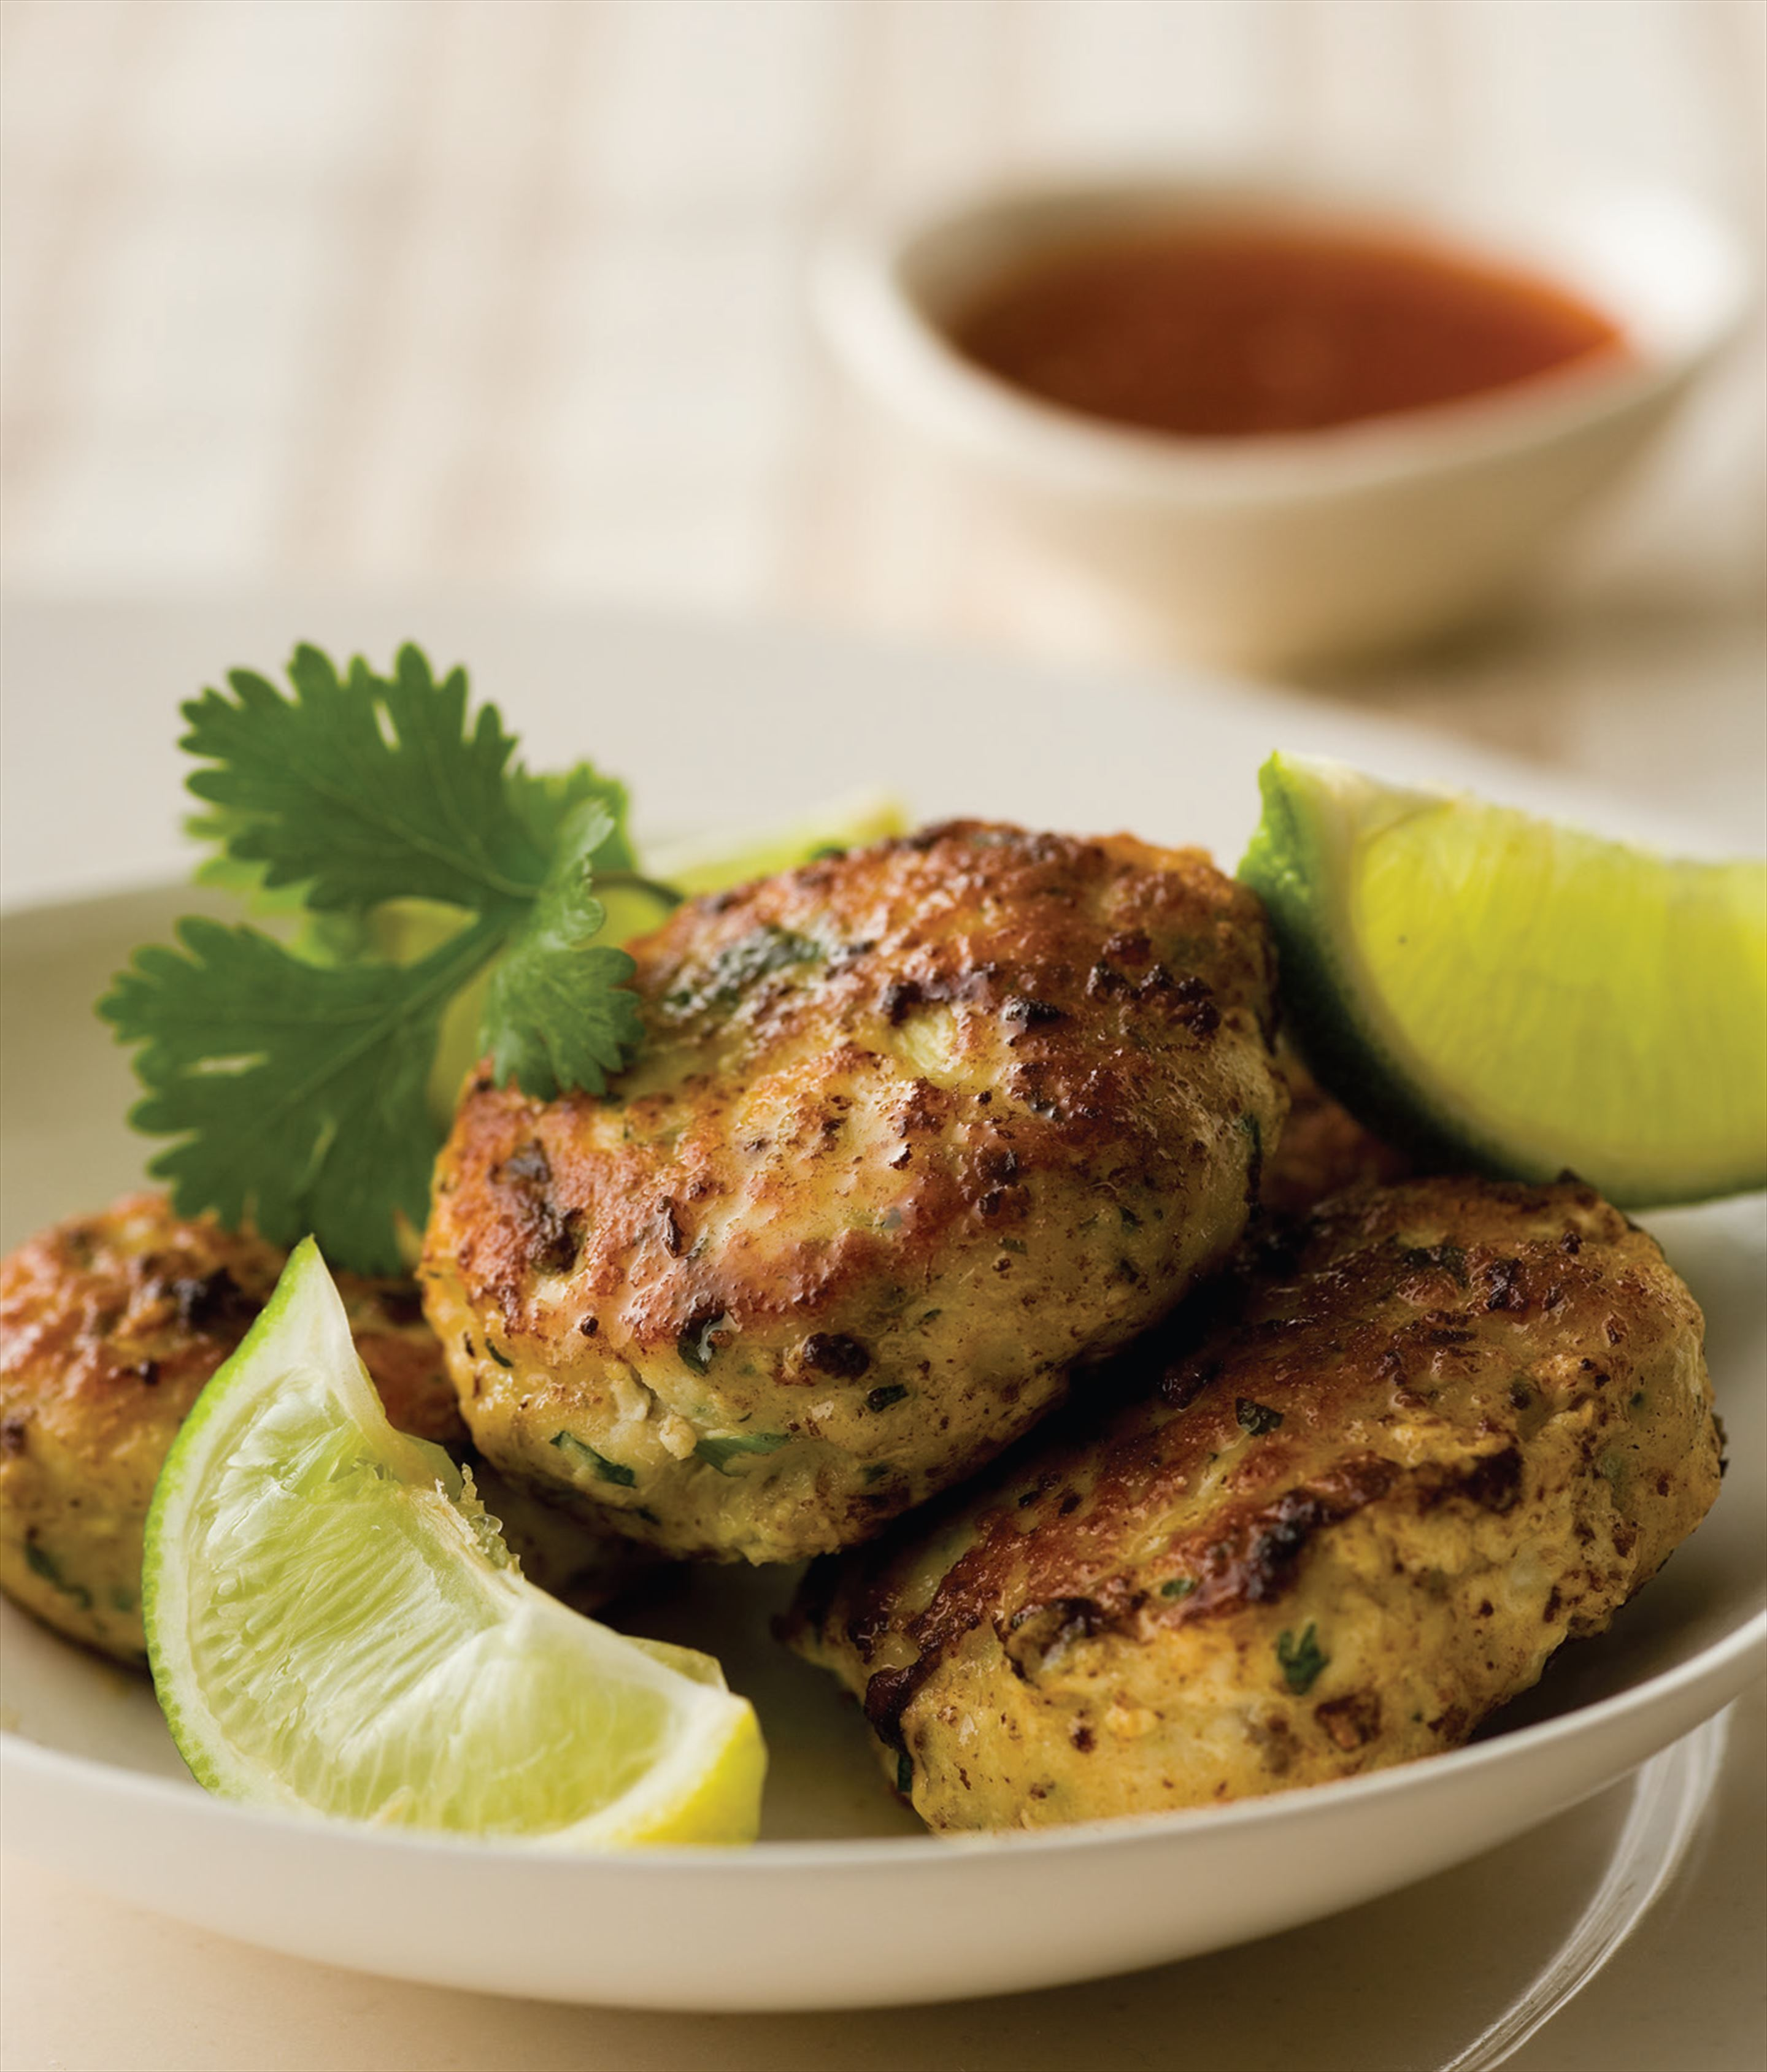 Fragrant Thai fish cakes and a green salad